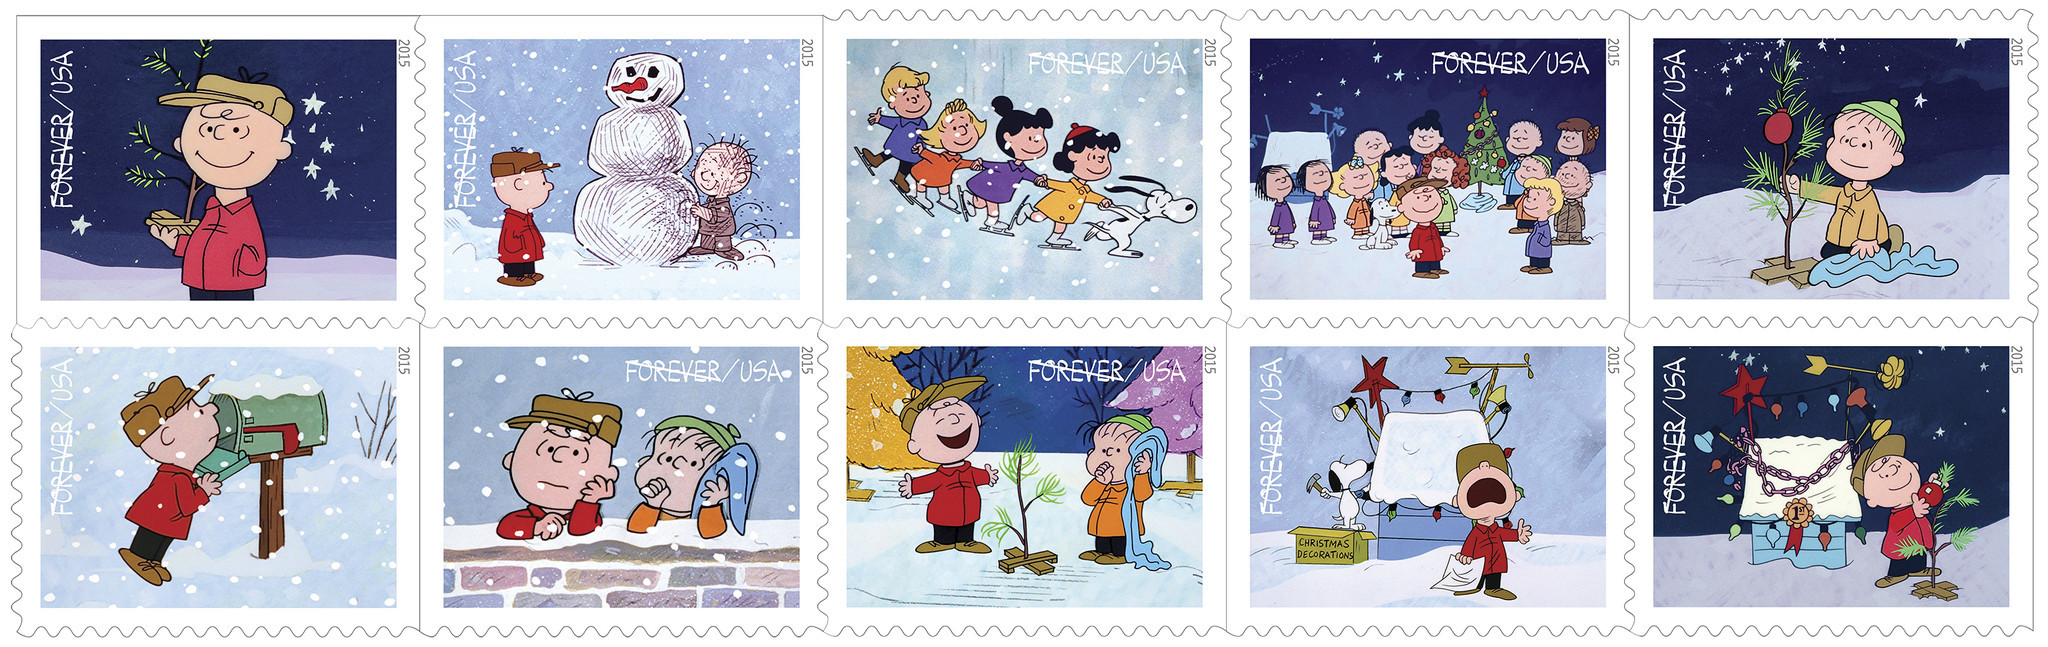 Charlie Brown Christmas 50th Anniversary Marked With